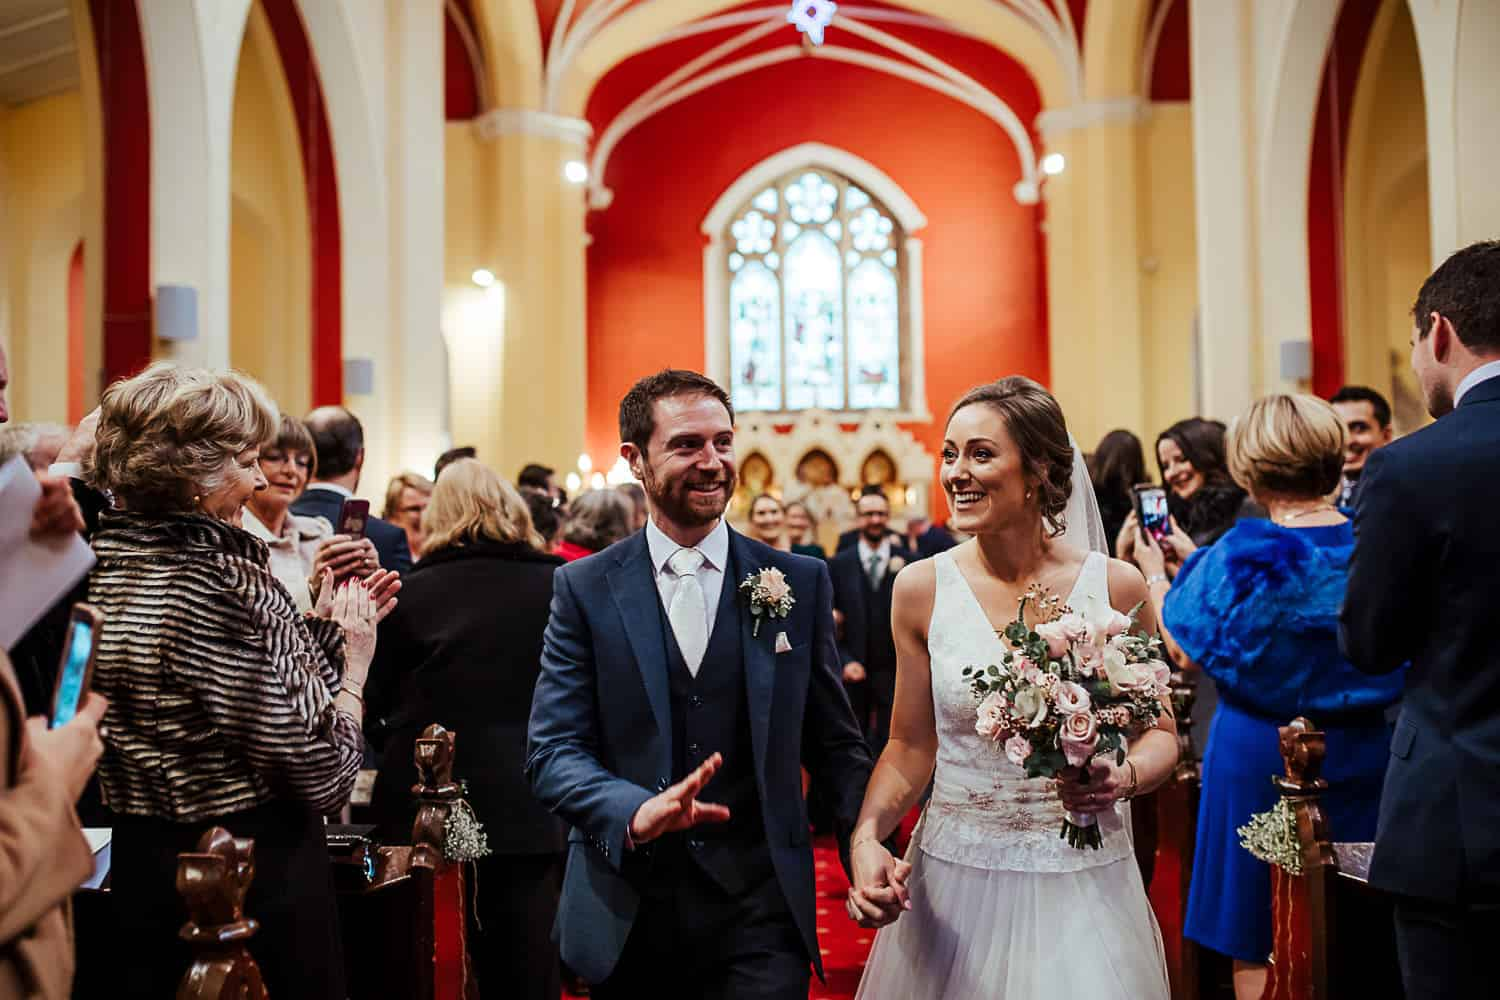 wedding ceremony ireland wedding photographer